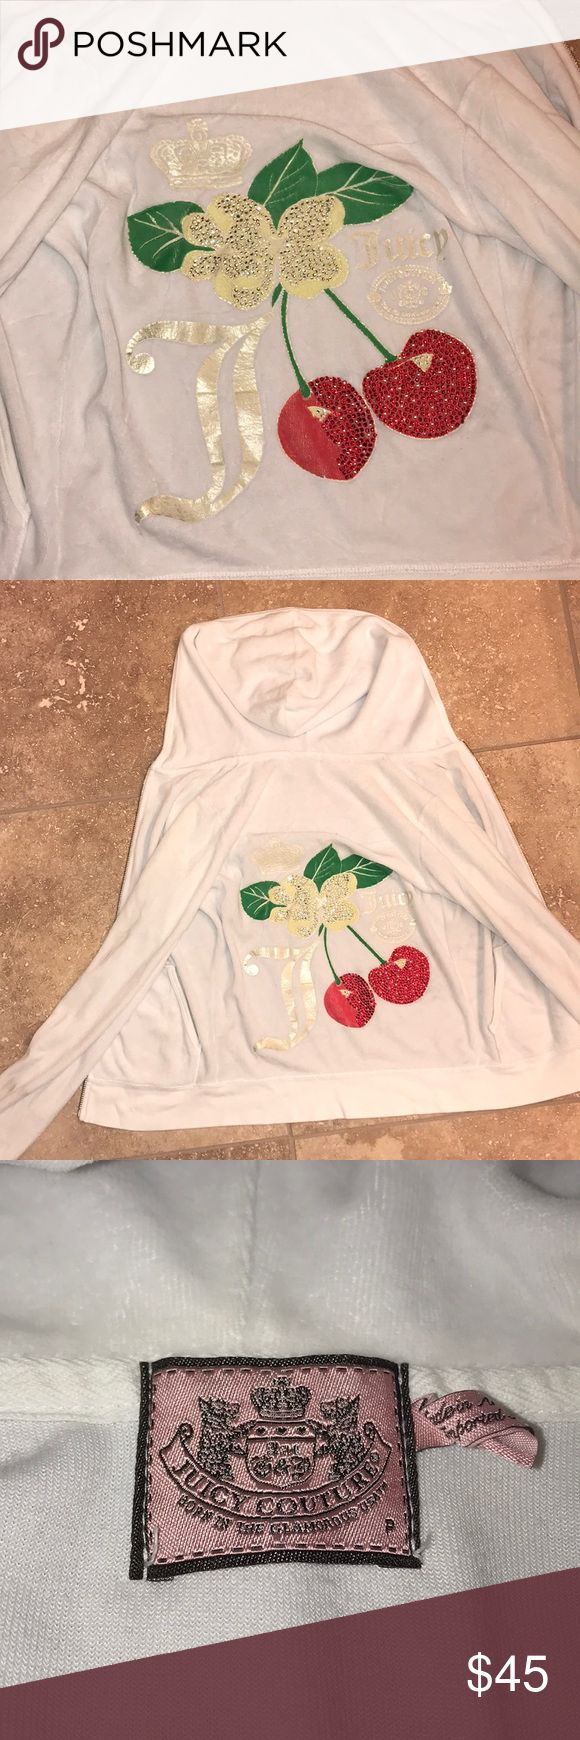 Good Condition Juicy Couture Jacket Barley Worn Very golf condition early 2000's Juicy Couture Jacket  White no stains or signs of wear or tear  Casual use for any occasion Juicy Couture Jackets & Coats